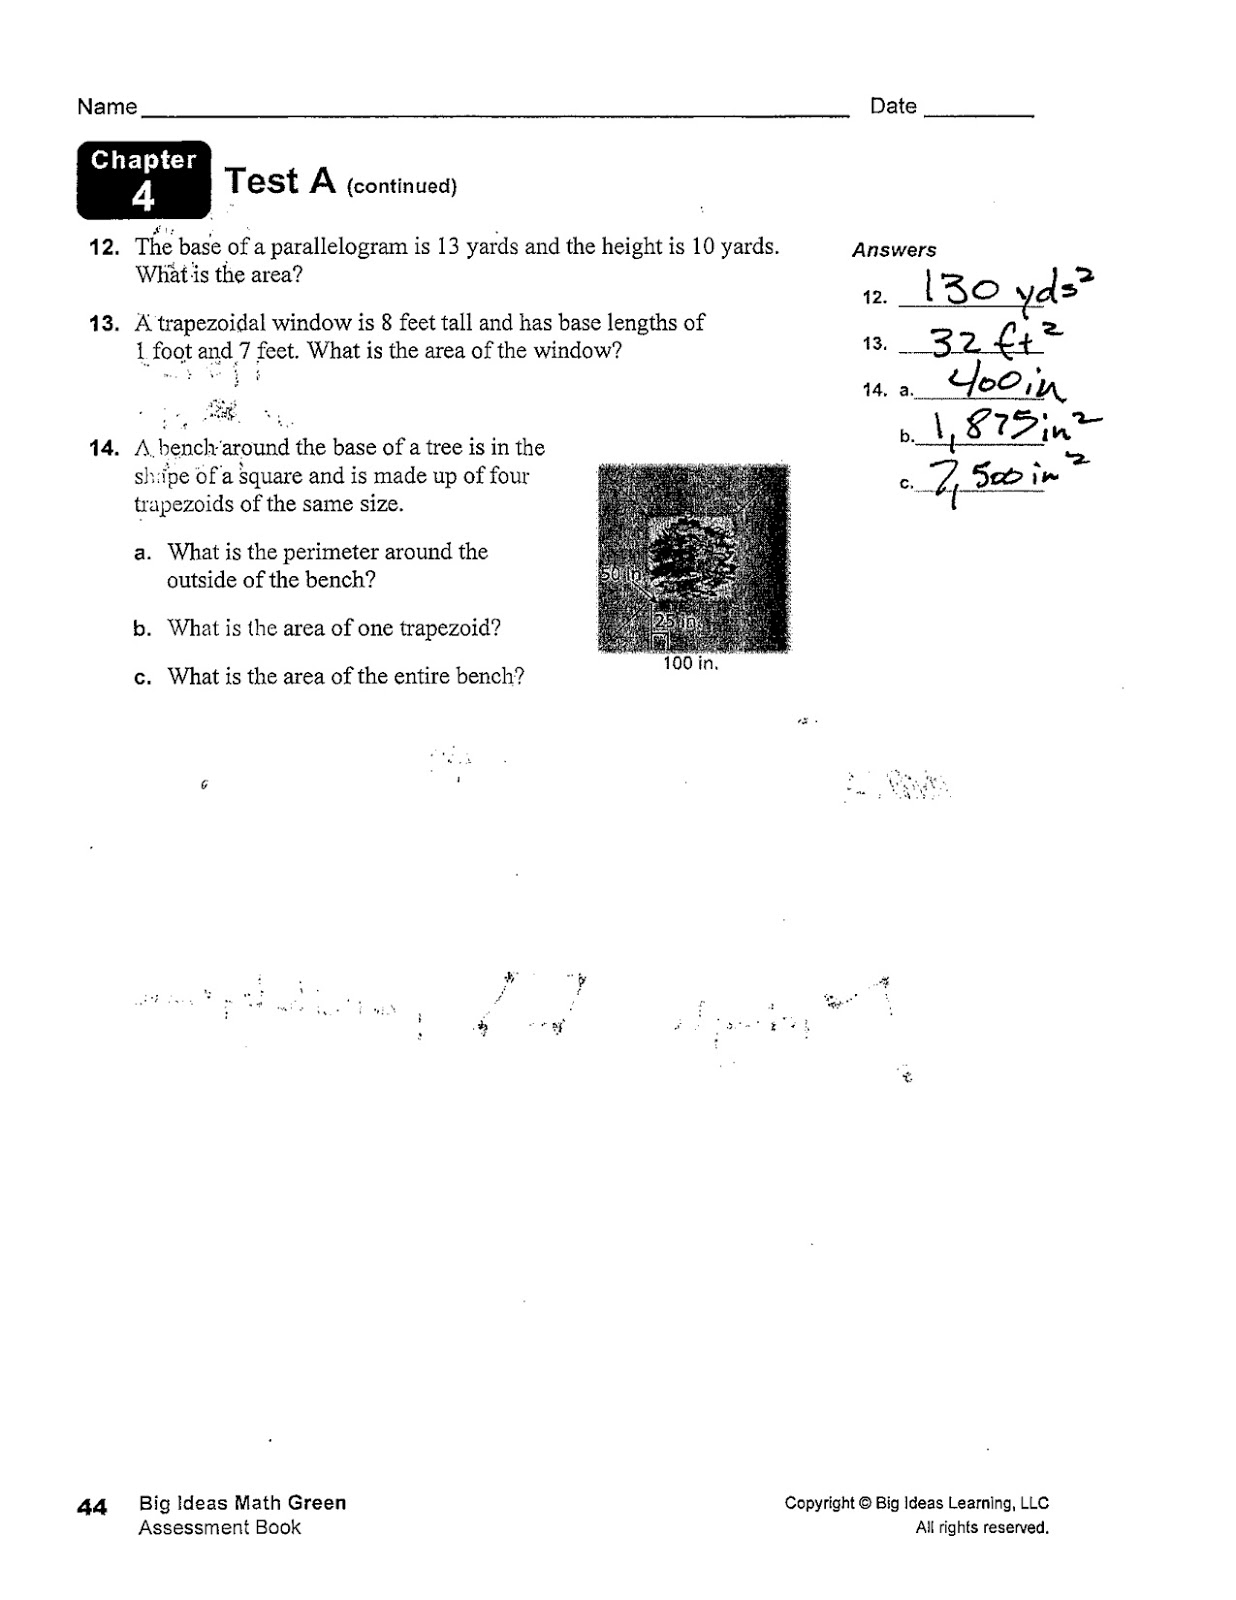 Heidemann 6th Grade Math And Science Chapter 4 Exam Key